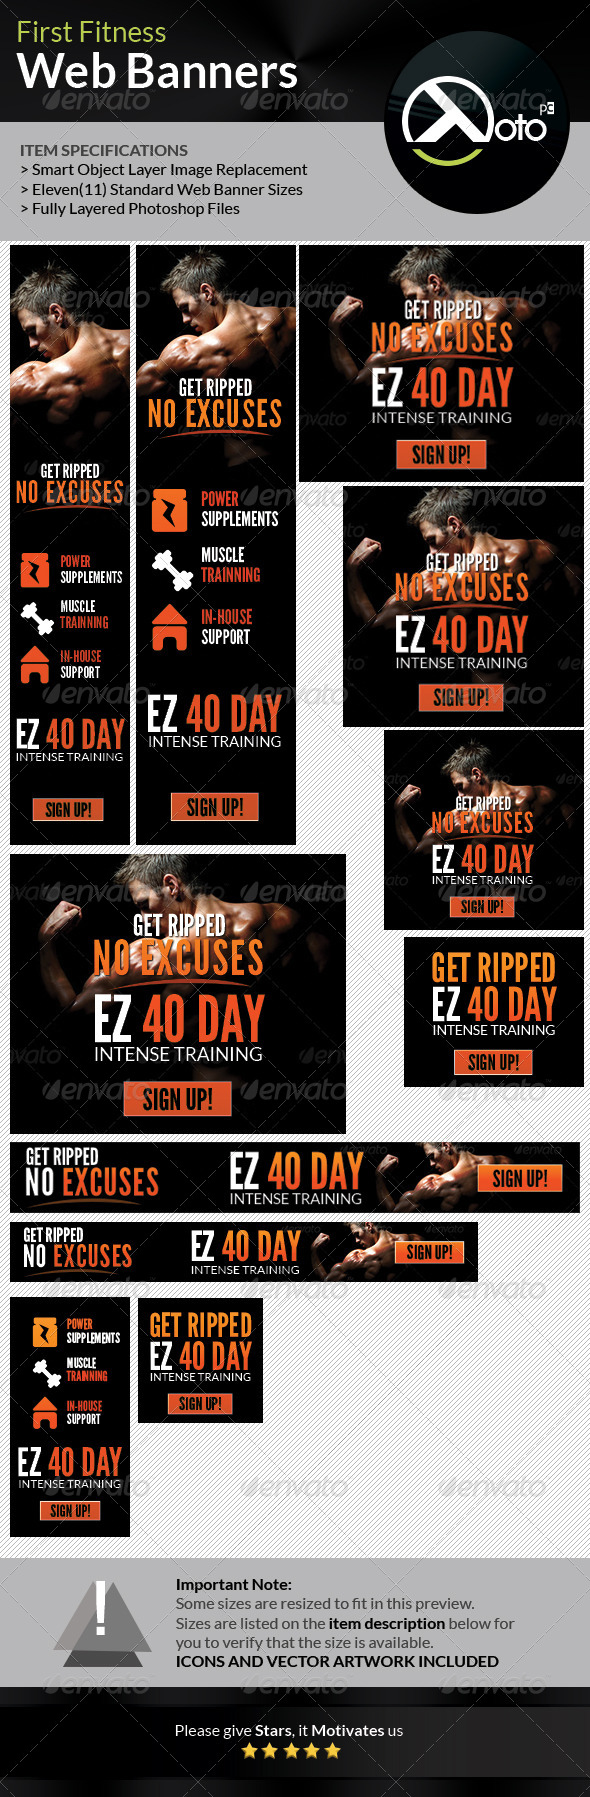 GraphicRiver First Fitness Body Weight Training Web Banners 7692472